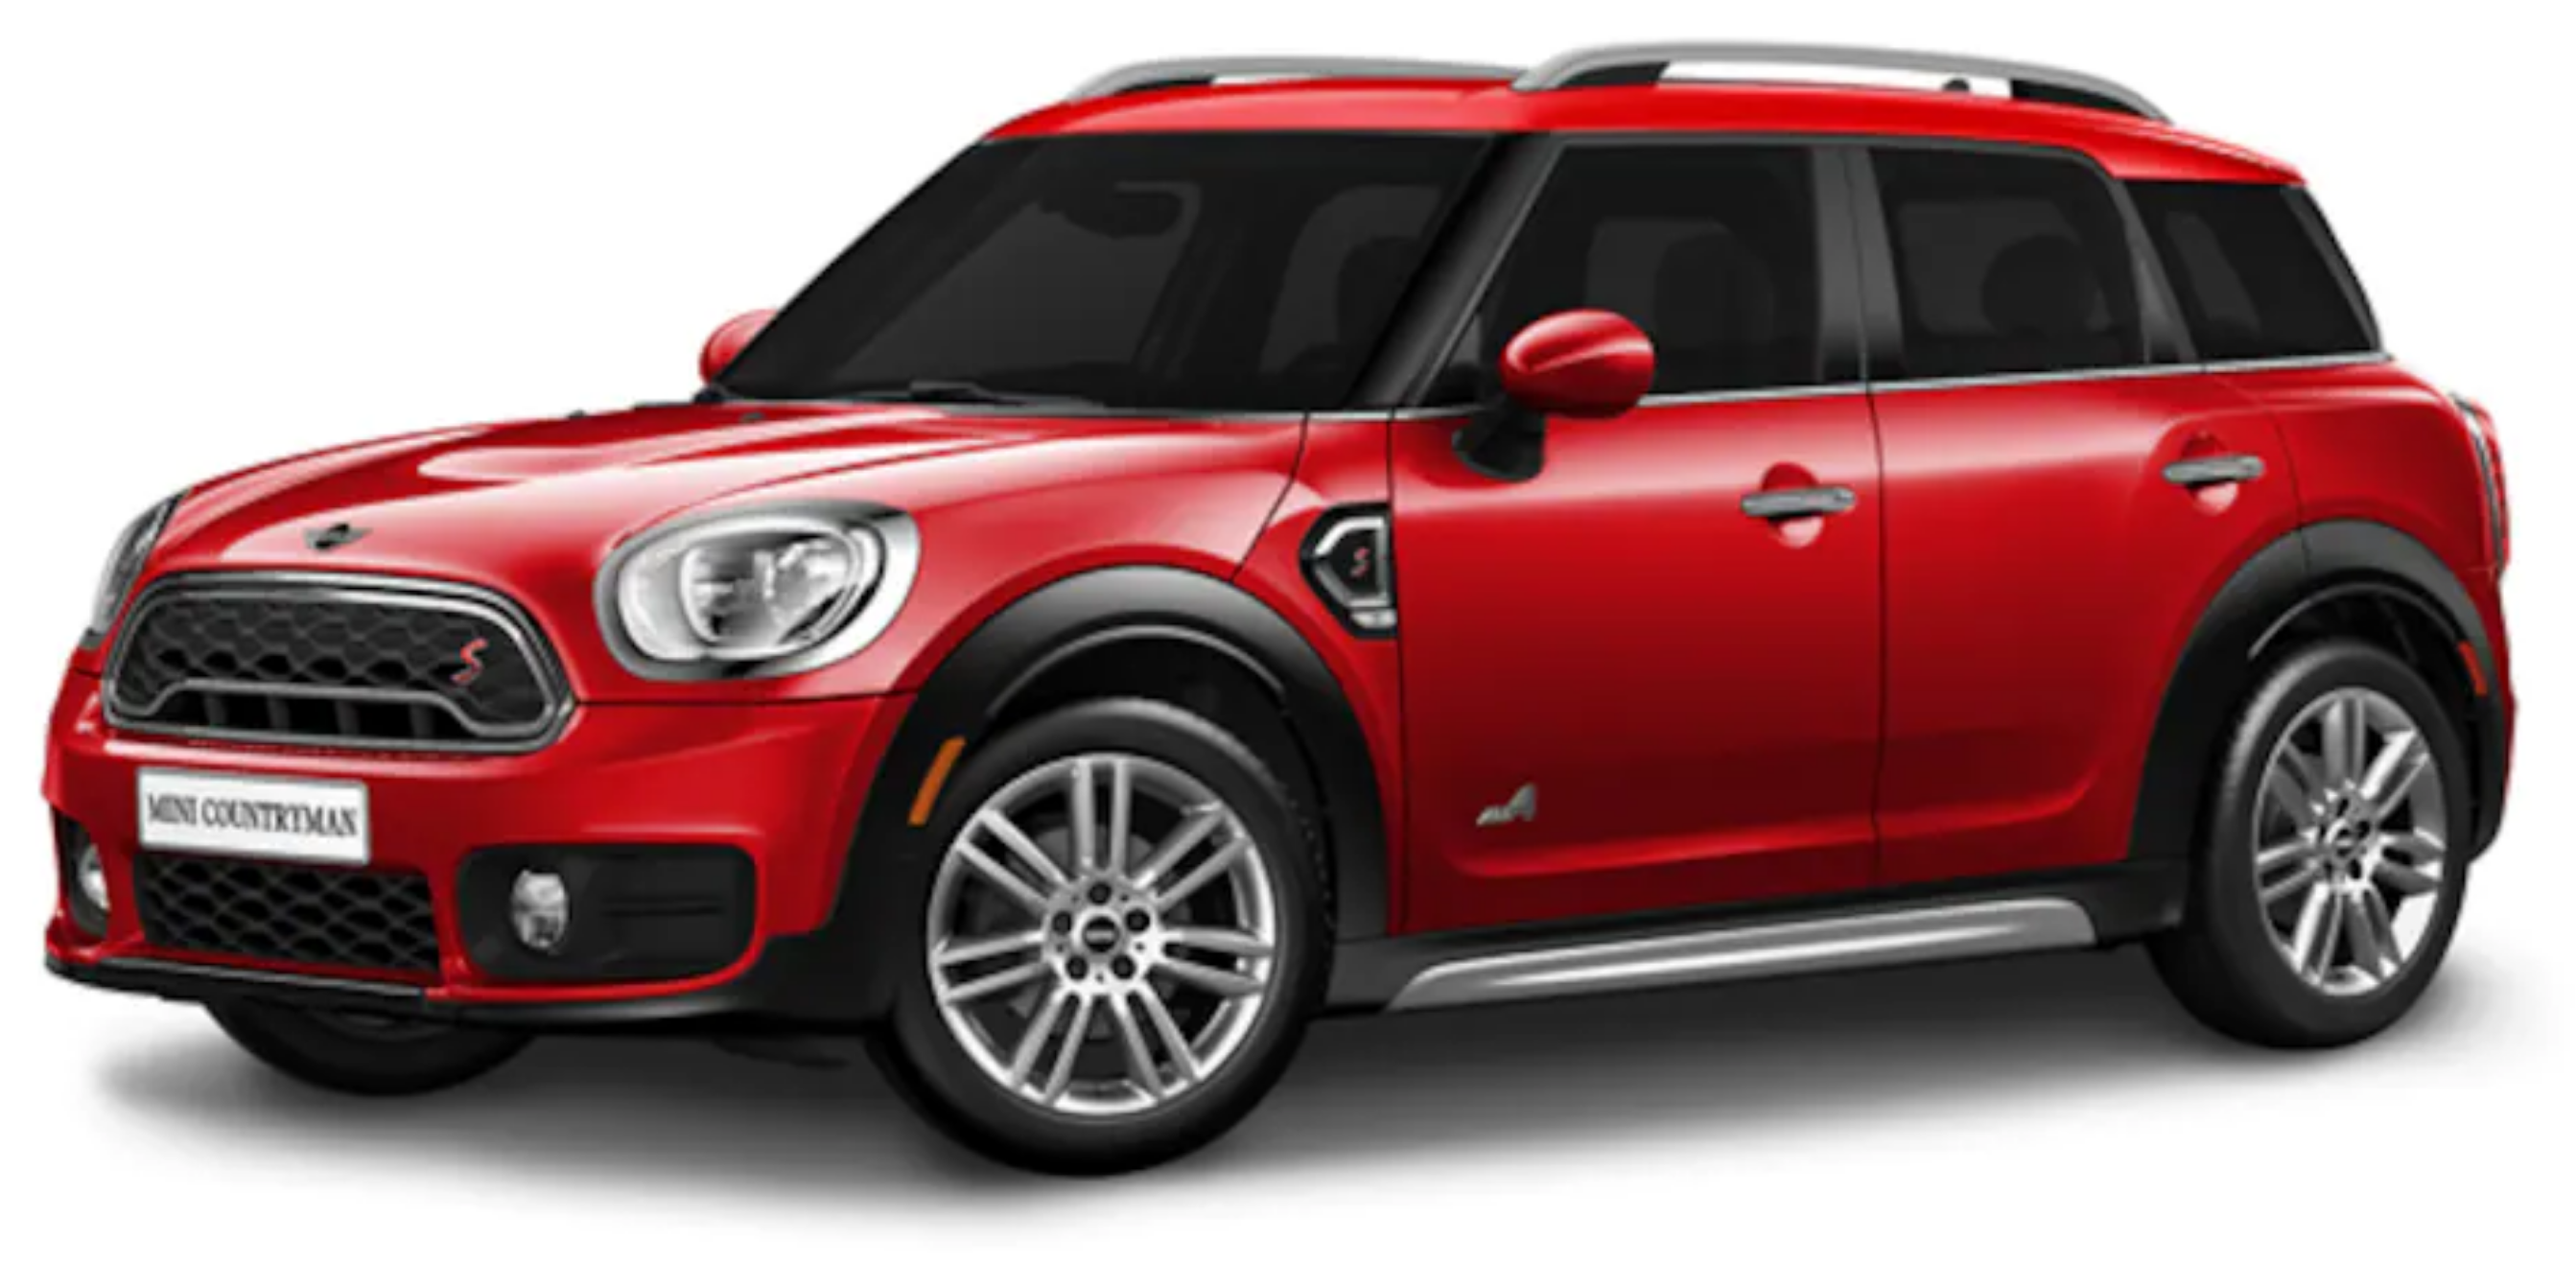 2021 MINI Cooper S Countryman